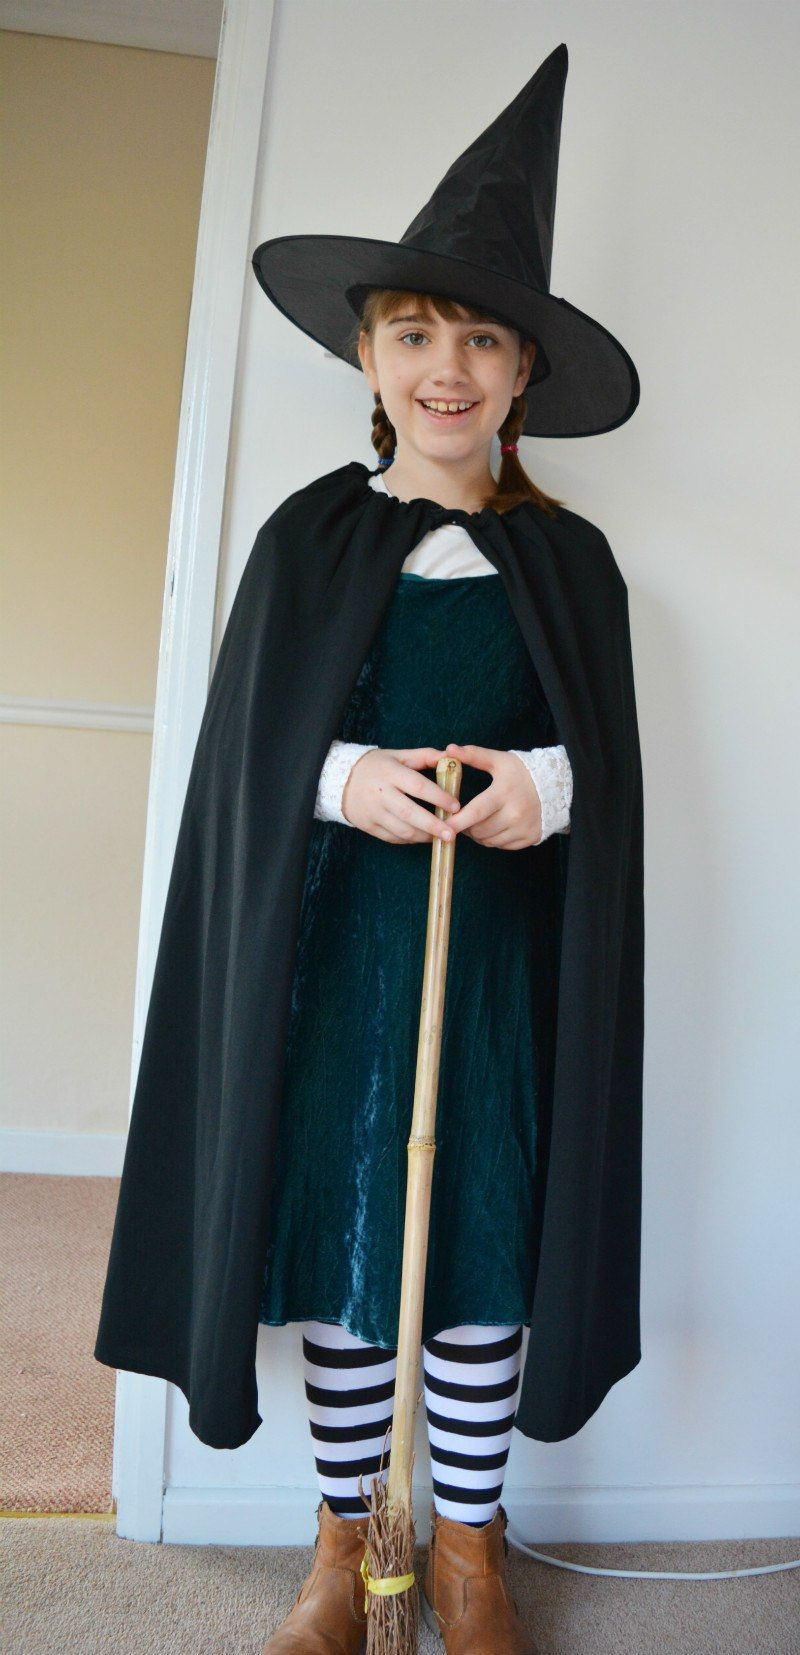 Worst Witch Costume DIY Cape Diy costumes, Witches and